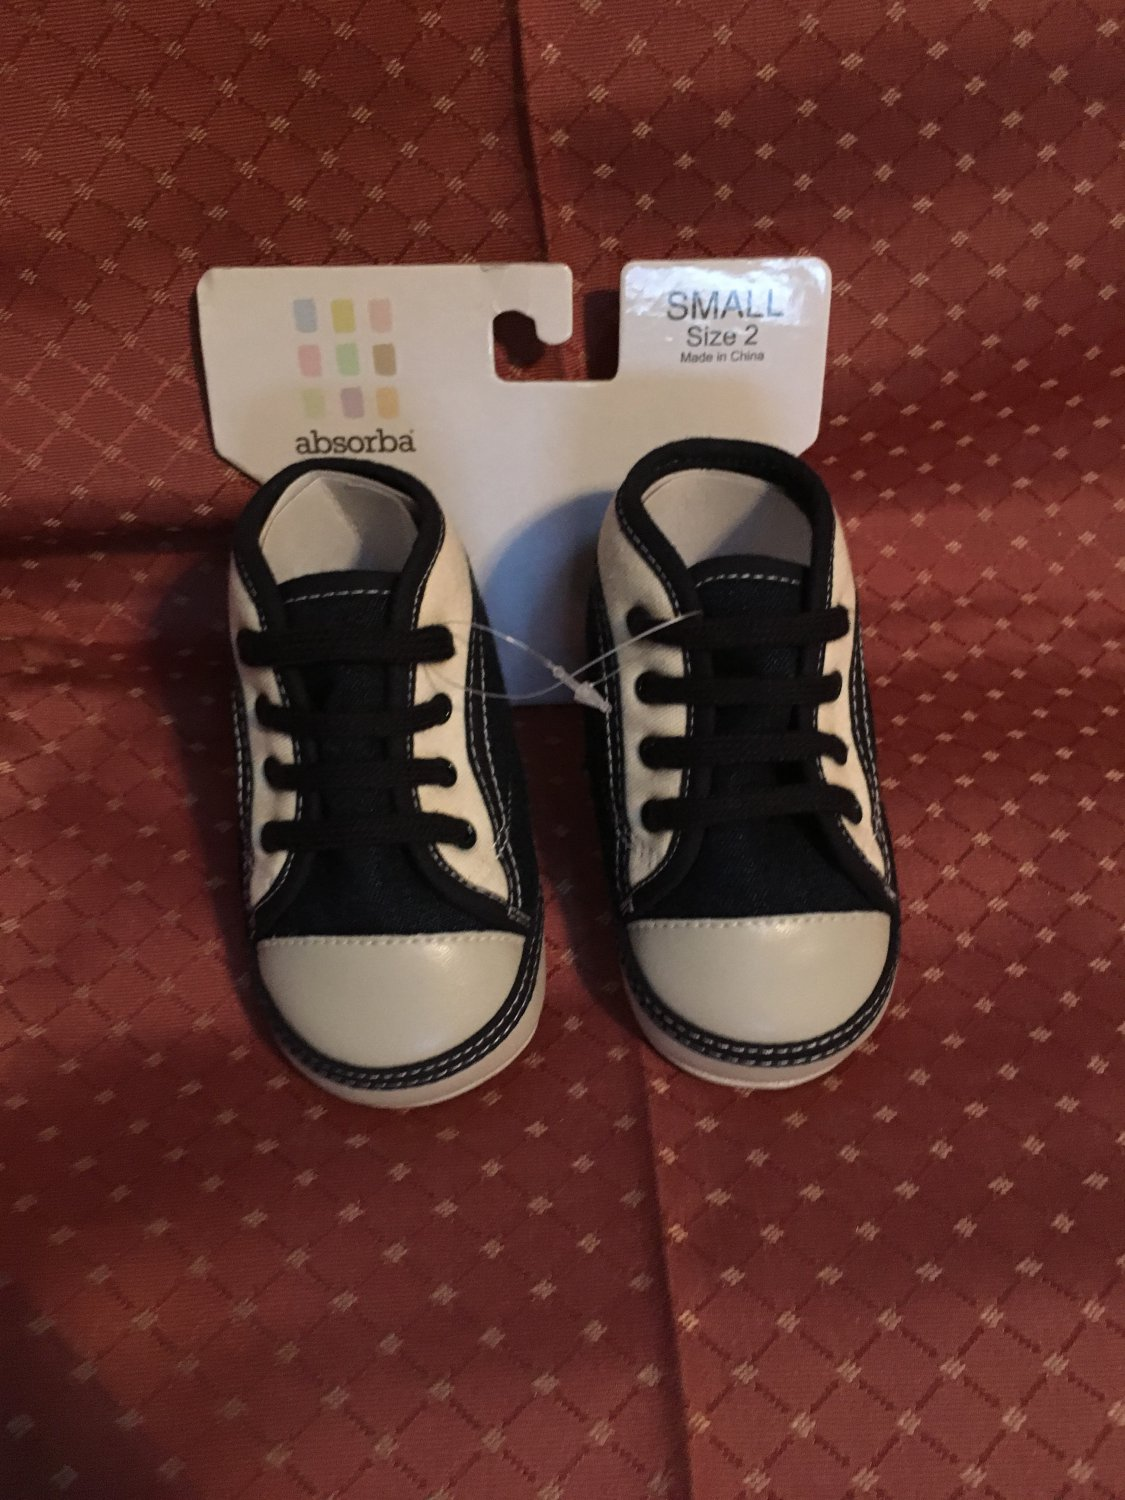 Absorba Boys Crib Shoes